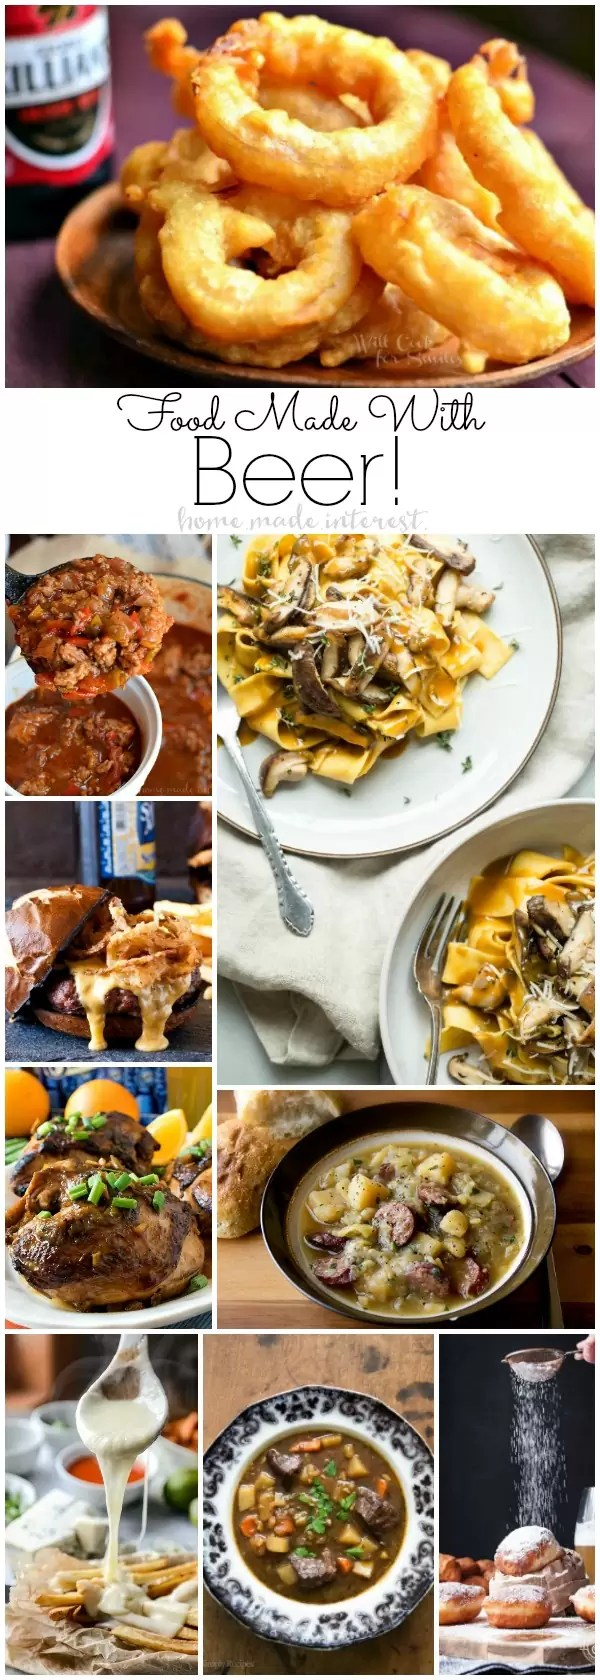 Recipes made with beer are great game day food, Oktoberfest parties or cozy autumn day. Food made with beer range from appetizers, slow cooker, crock pot recipes and even sweet desserts.